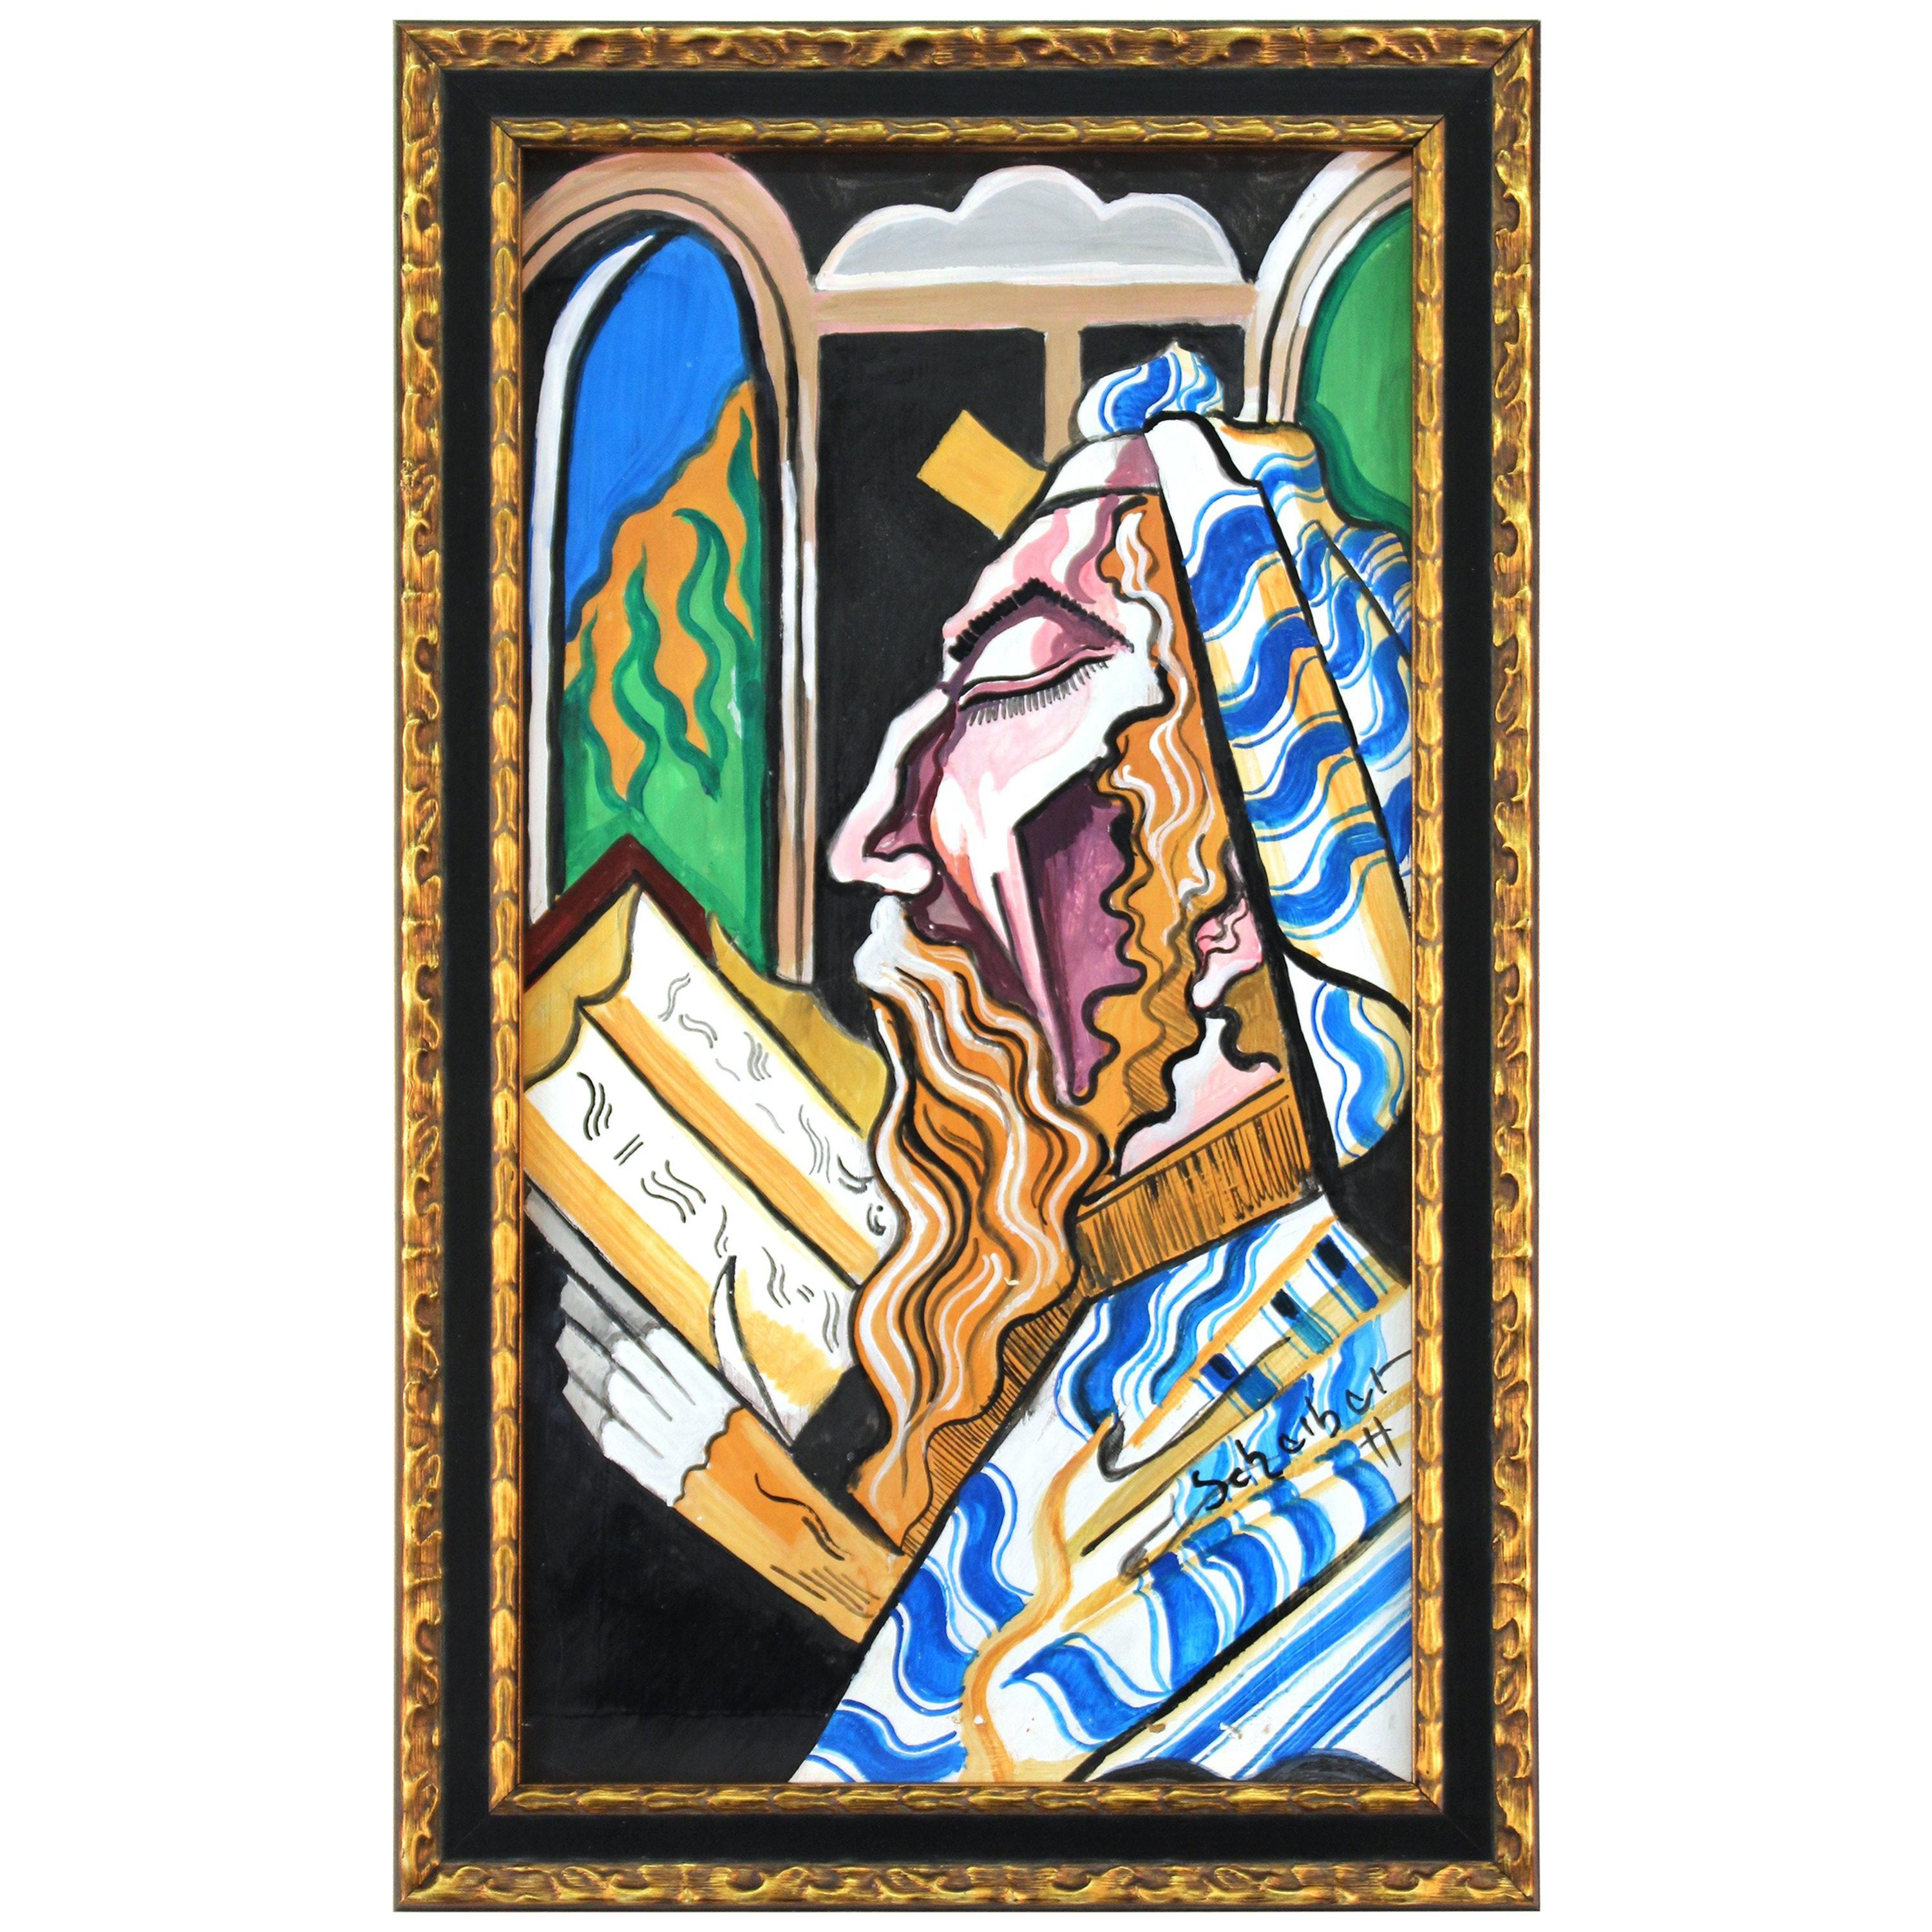 Rabbinical Judaica Expressionist Portrait Painting Attributed to Hugo Scheiber